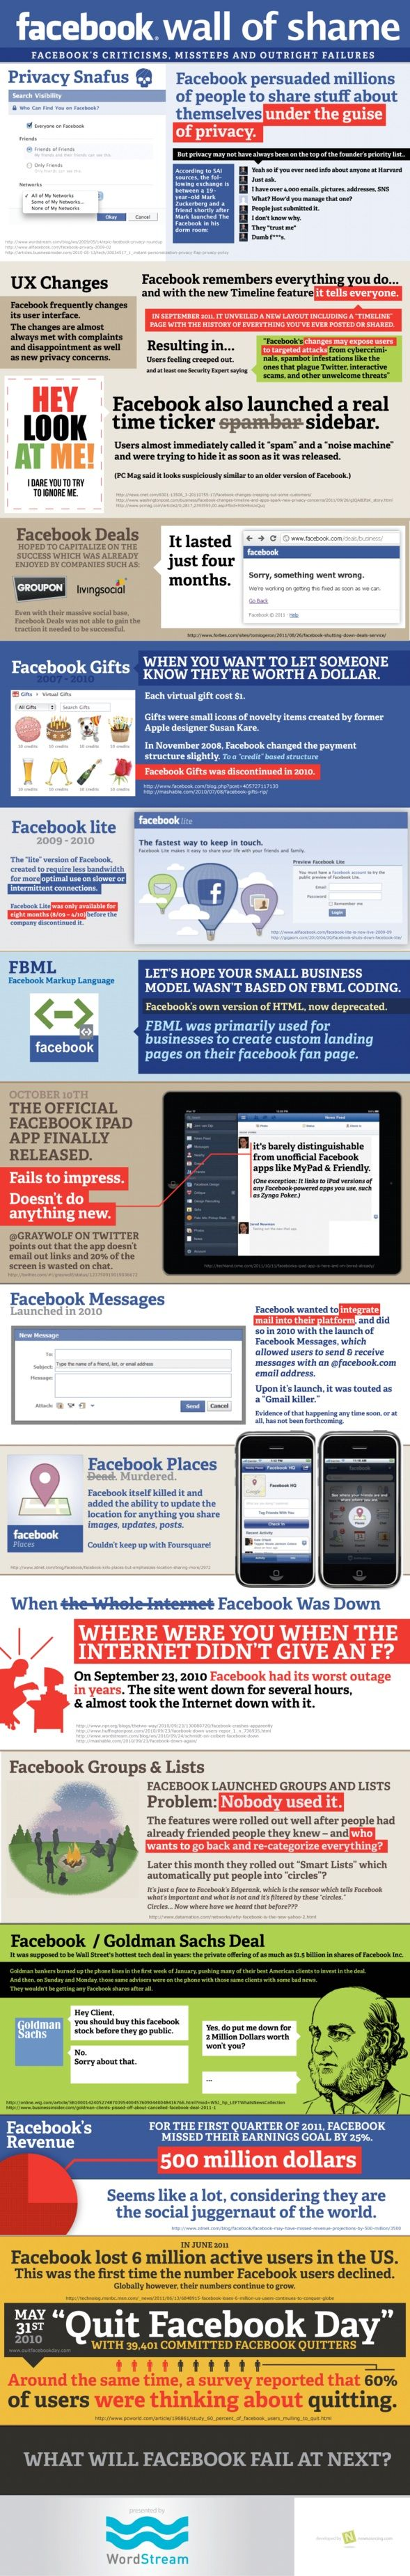 A History of Facebook Failures - You're going to have failures when you have a huge user base and introduce new features but it's interesting to see.